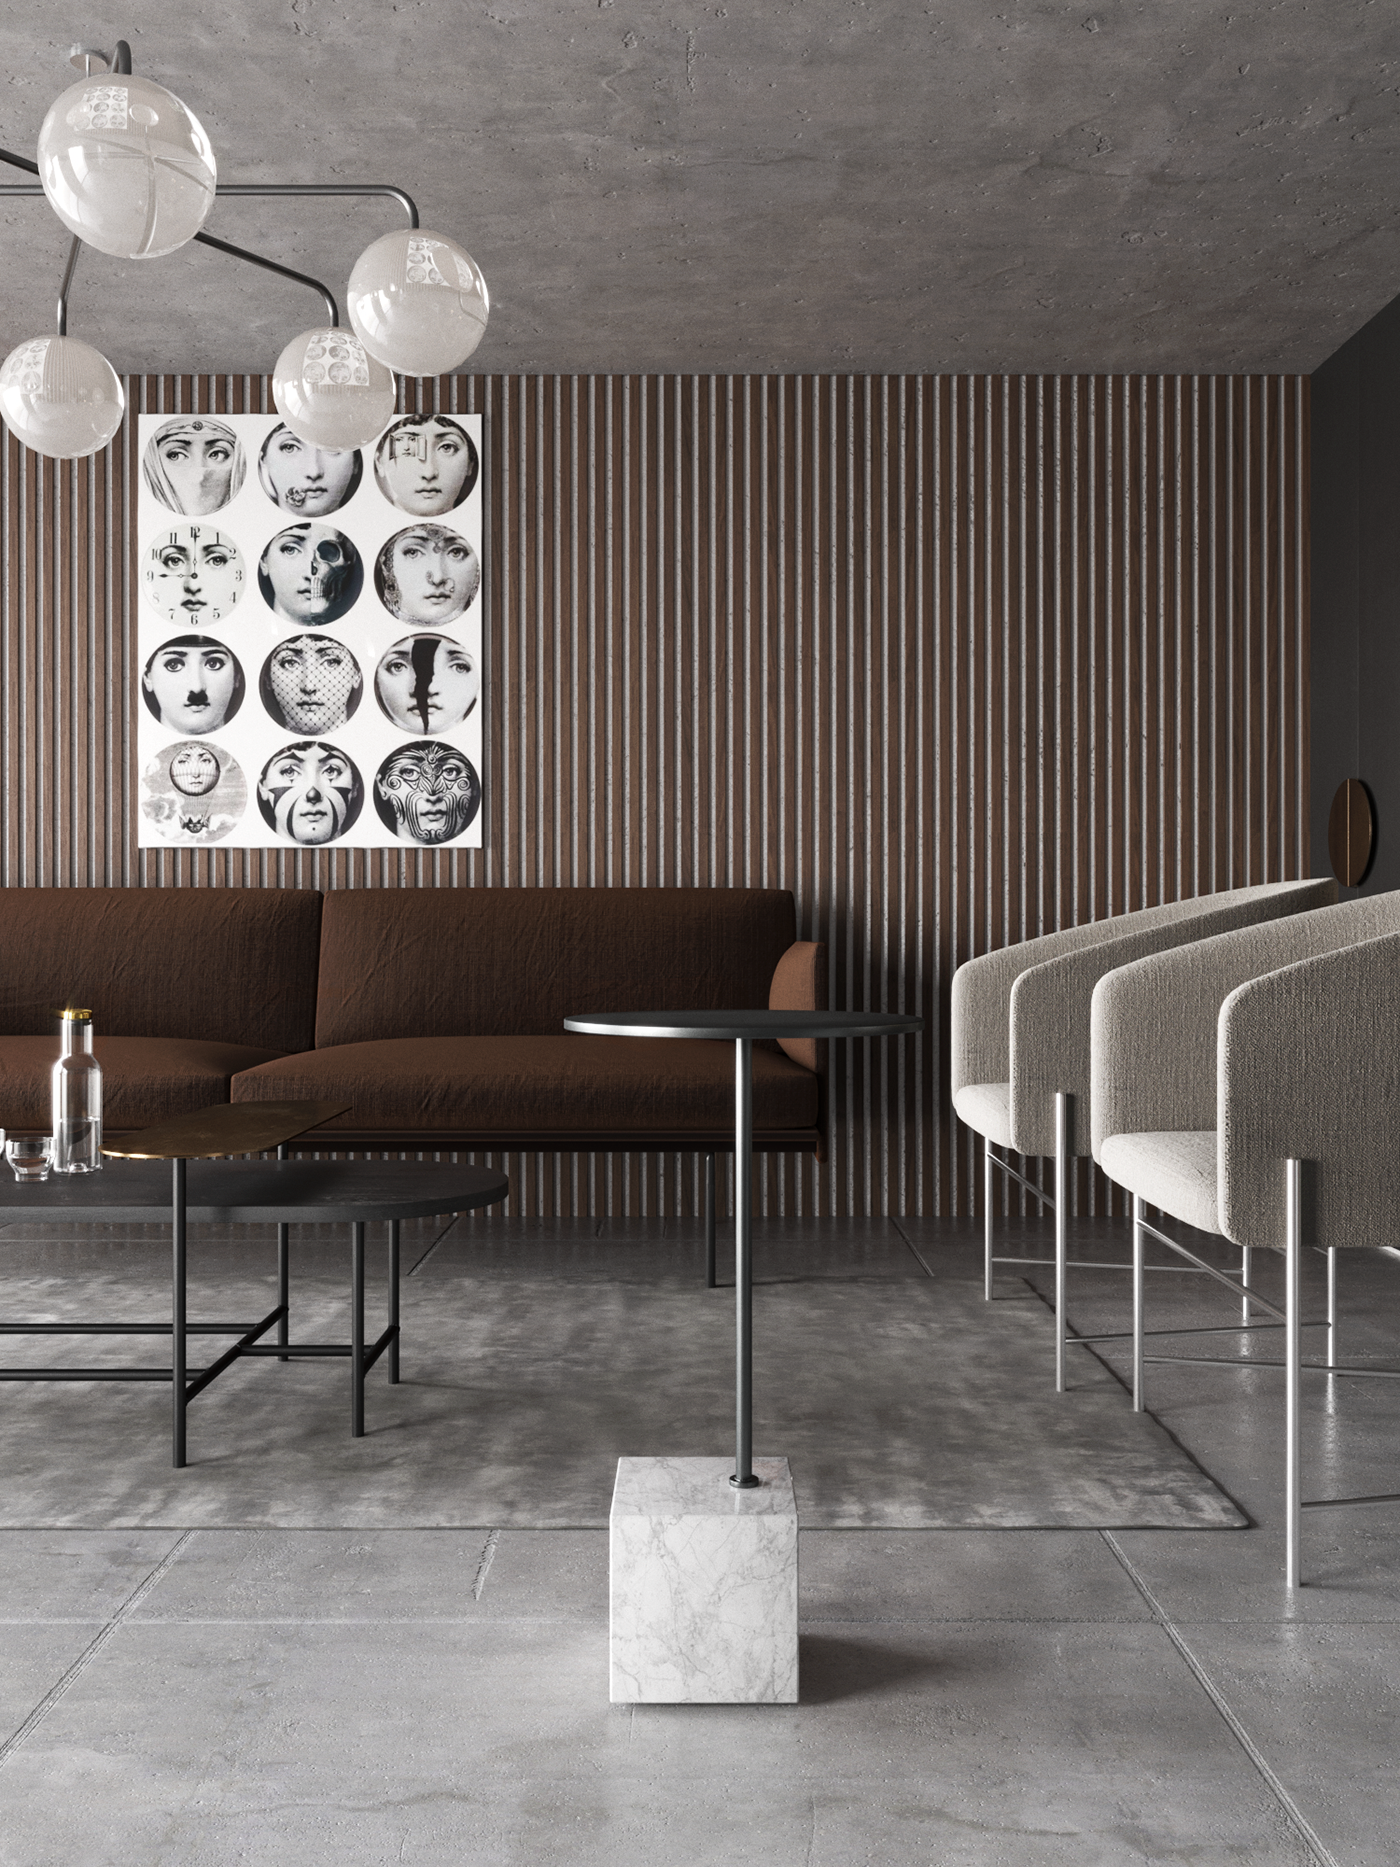 moder,corona,3dsmax,living room,kitchen,interior design ,nika buzko